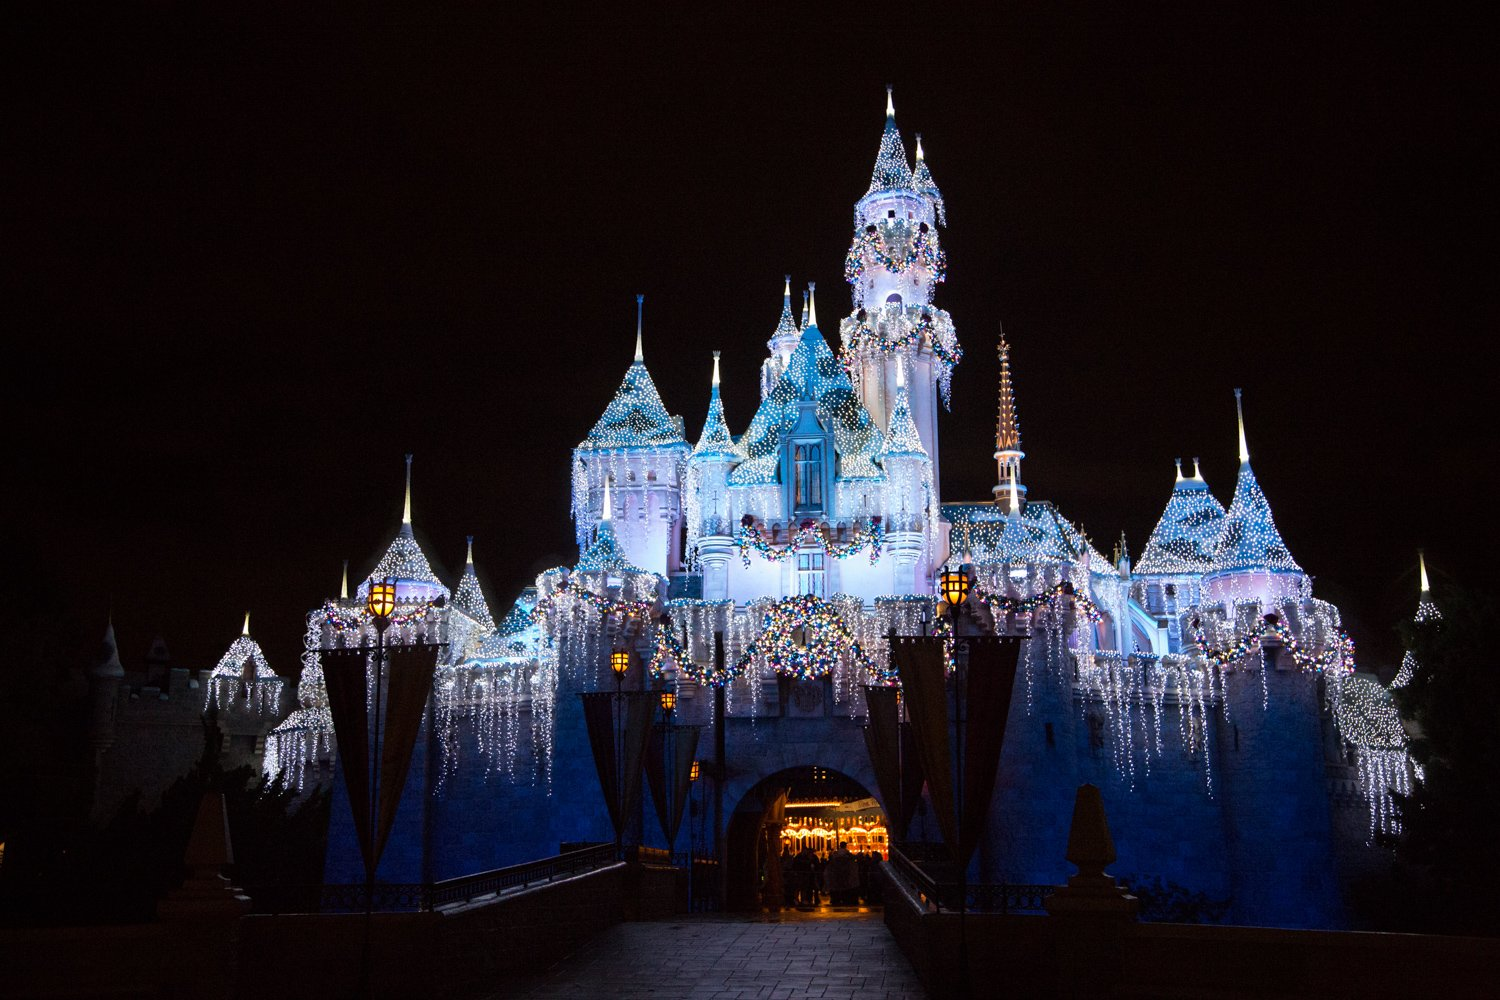 disneyland-at-christmas-time-17